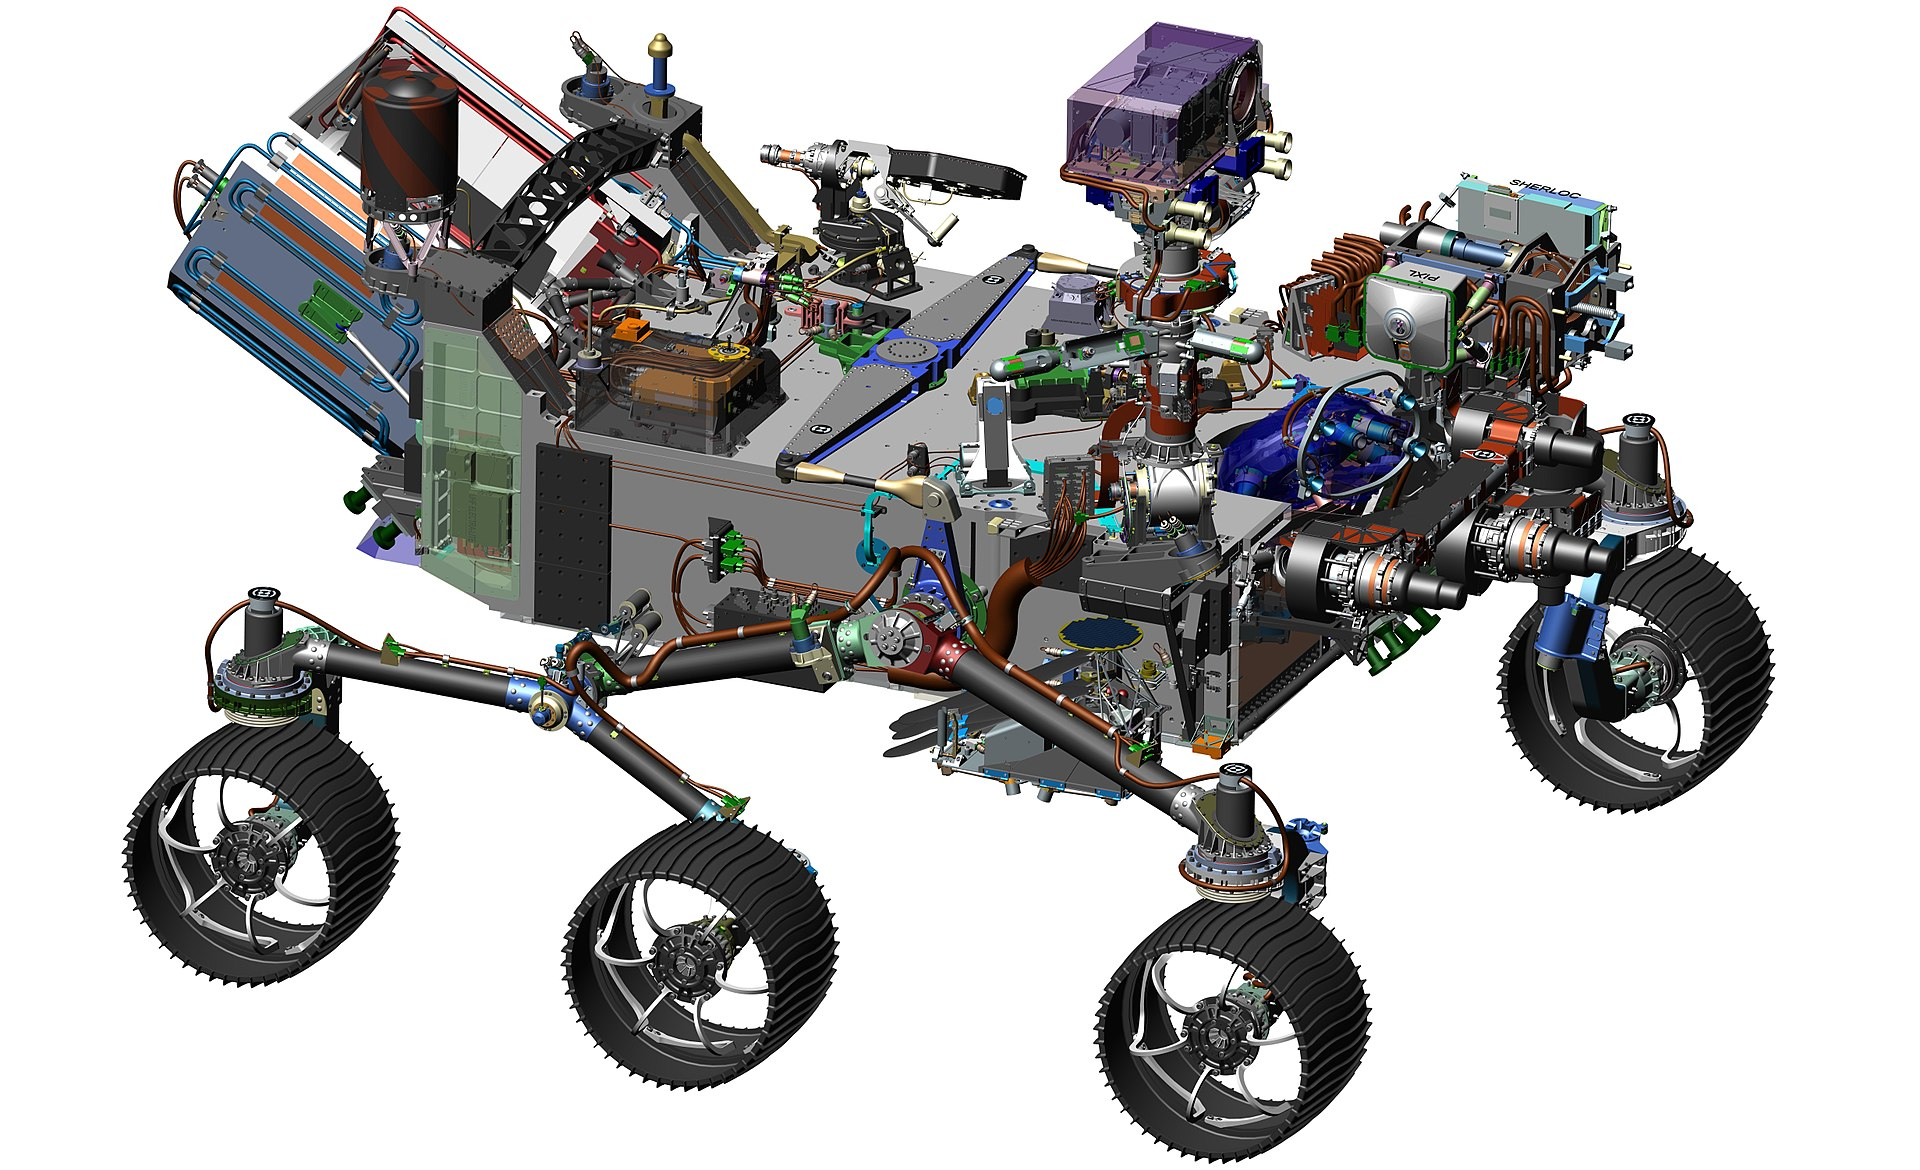 3D-Modell des Mars-Rovers Perseverance